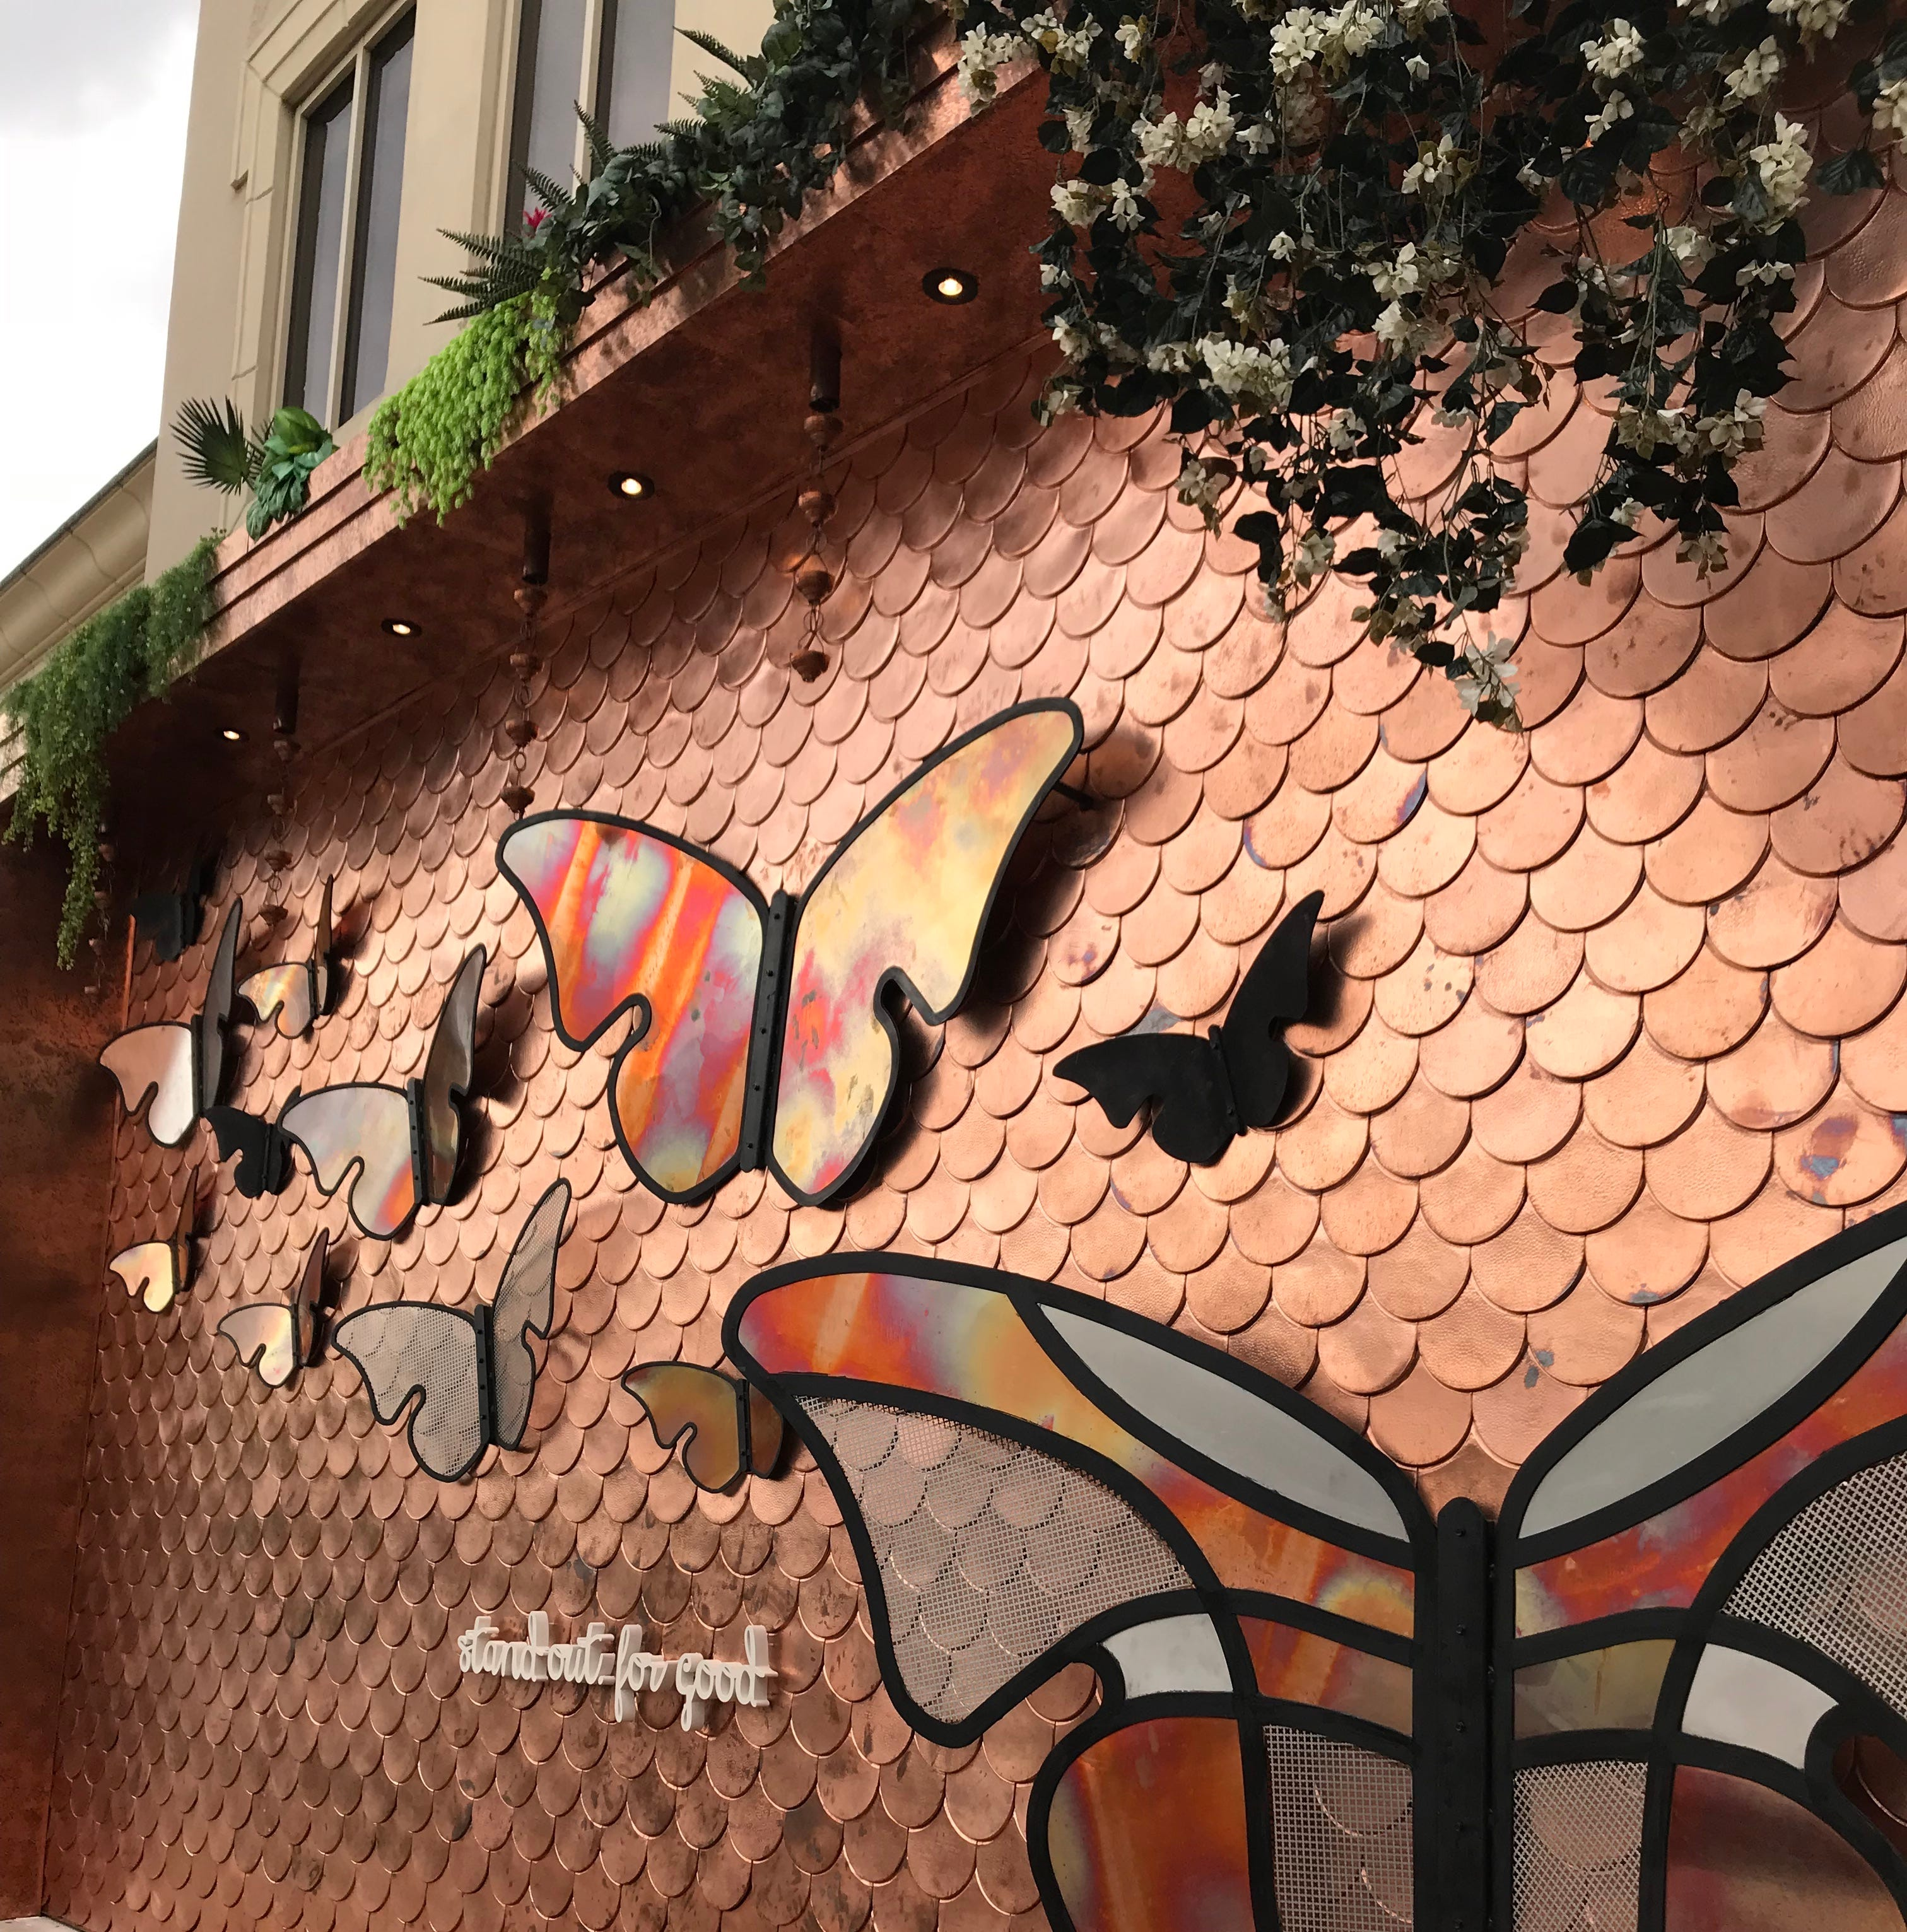 Try on your wings before shopping at this reimagined Renaissance boutique